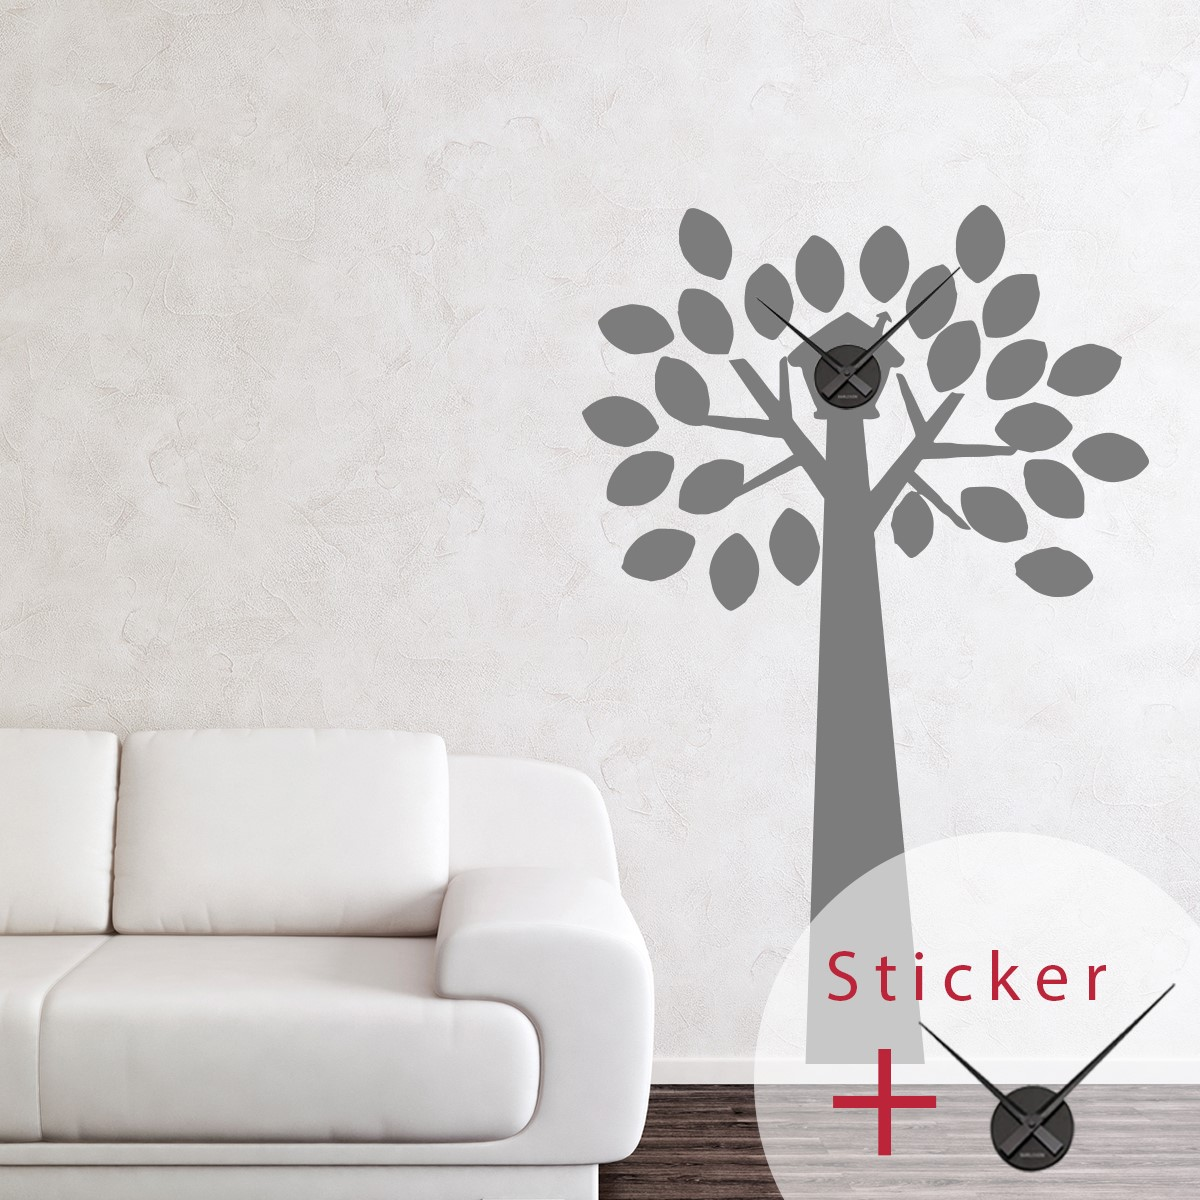 sticker mural nichoir stickers d co horloges ambiance. Black Bedroom Furniture Sets. Home Design Ideas